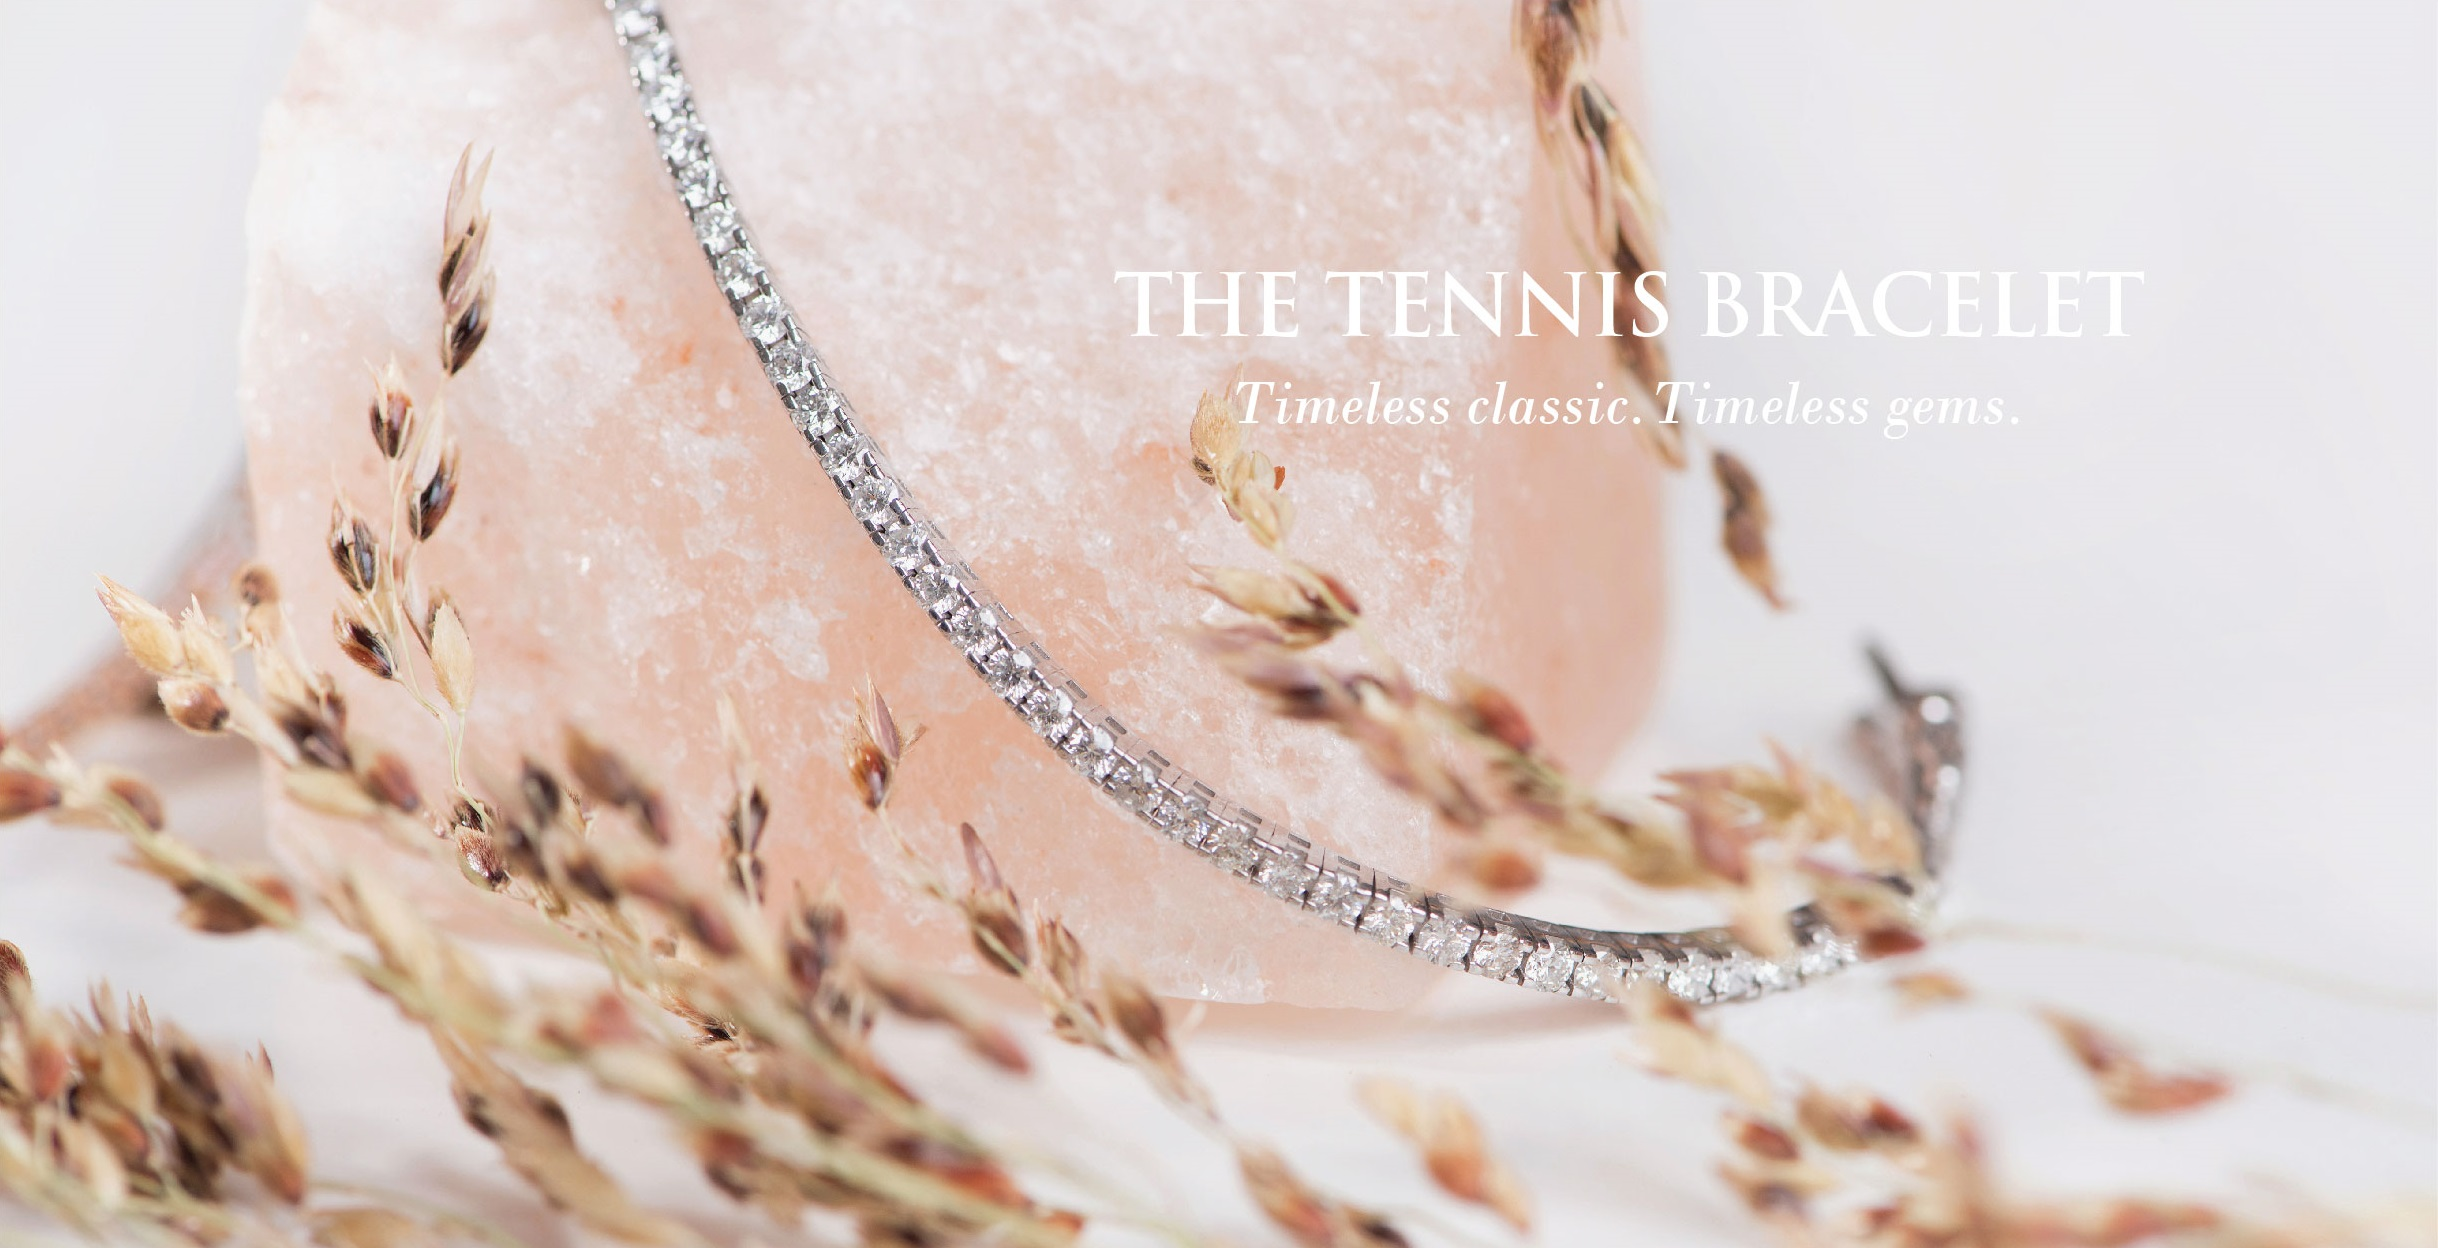 The-Tennis-Bracelet-desktop2